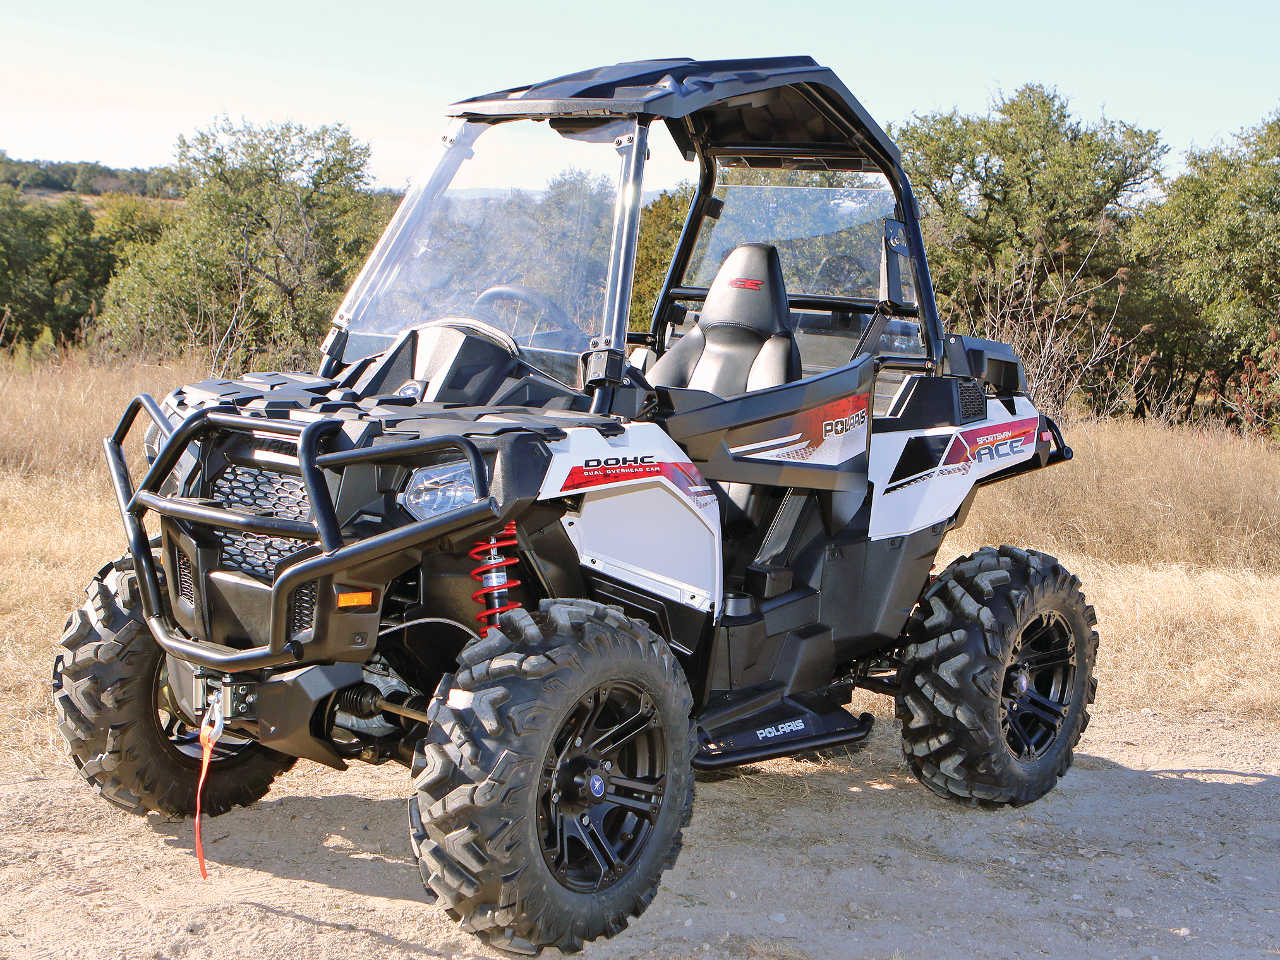 2014 Polaris Sportsman Ace And Scrambler 1000 Xp Review